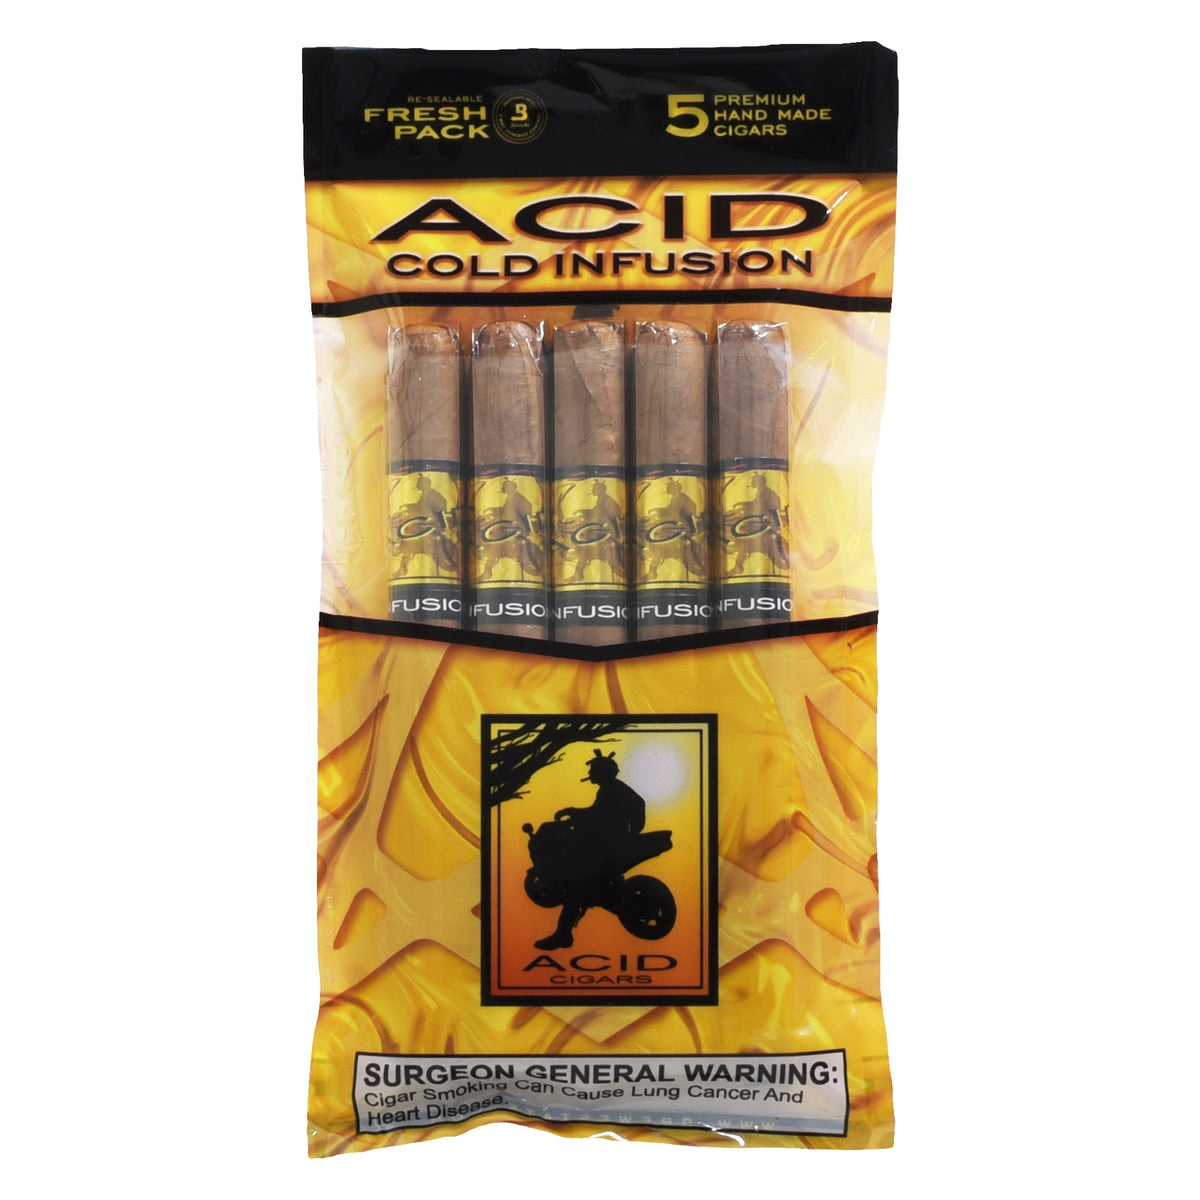 Acid Cold Infusion Cigars - 5 Cigar Humi-pack - CigarsCity.com